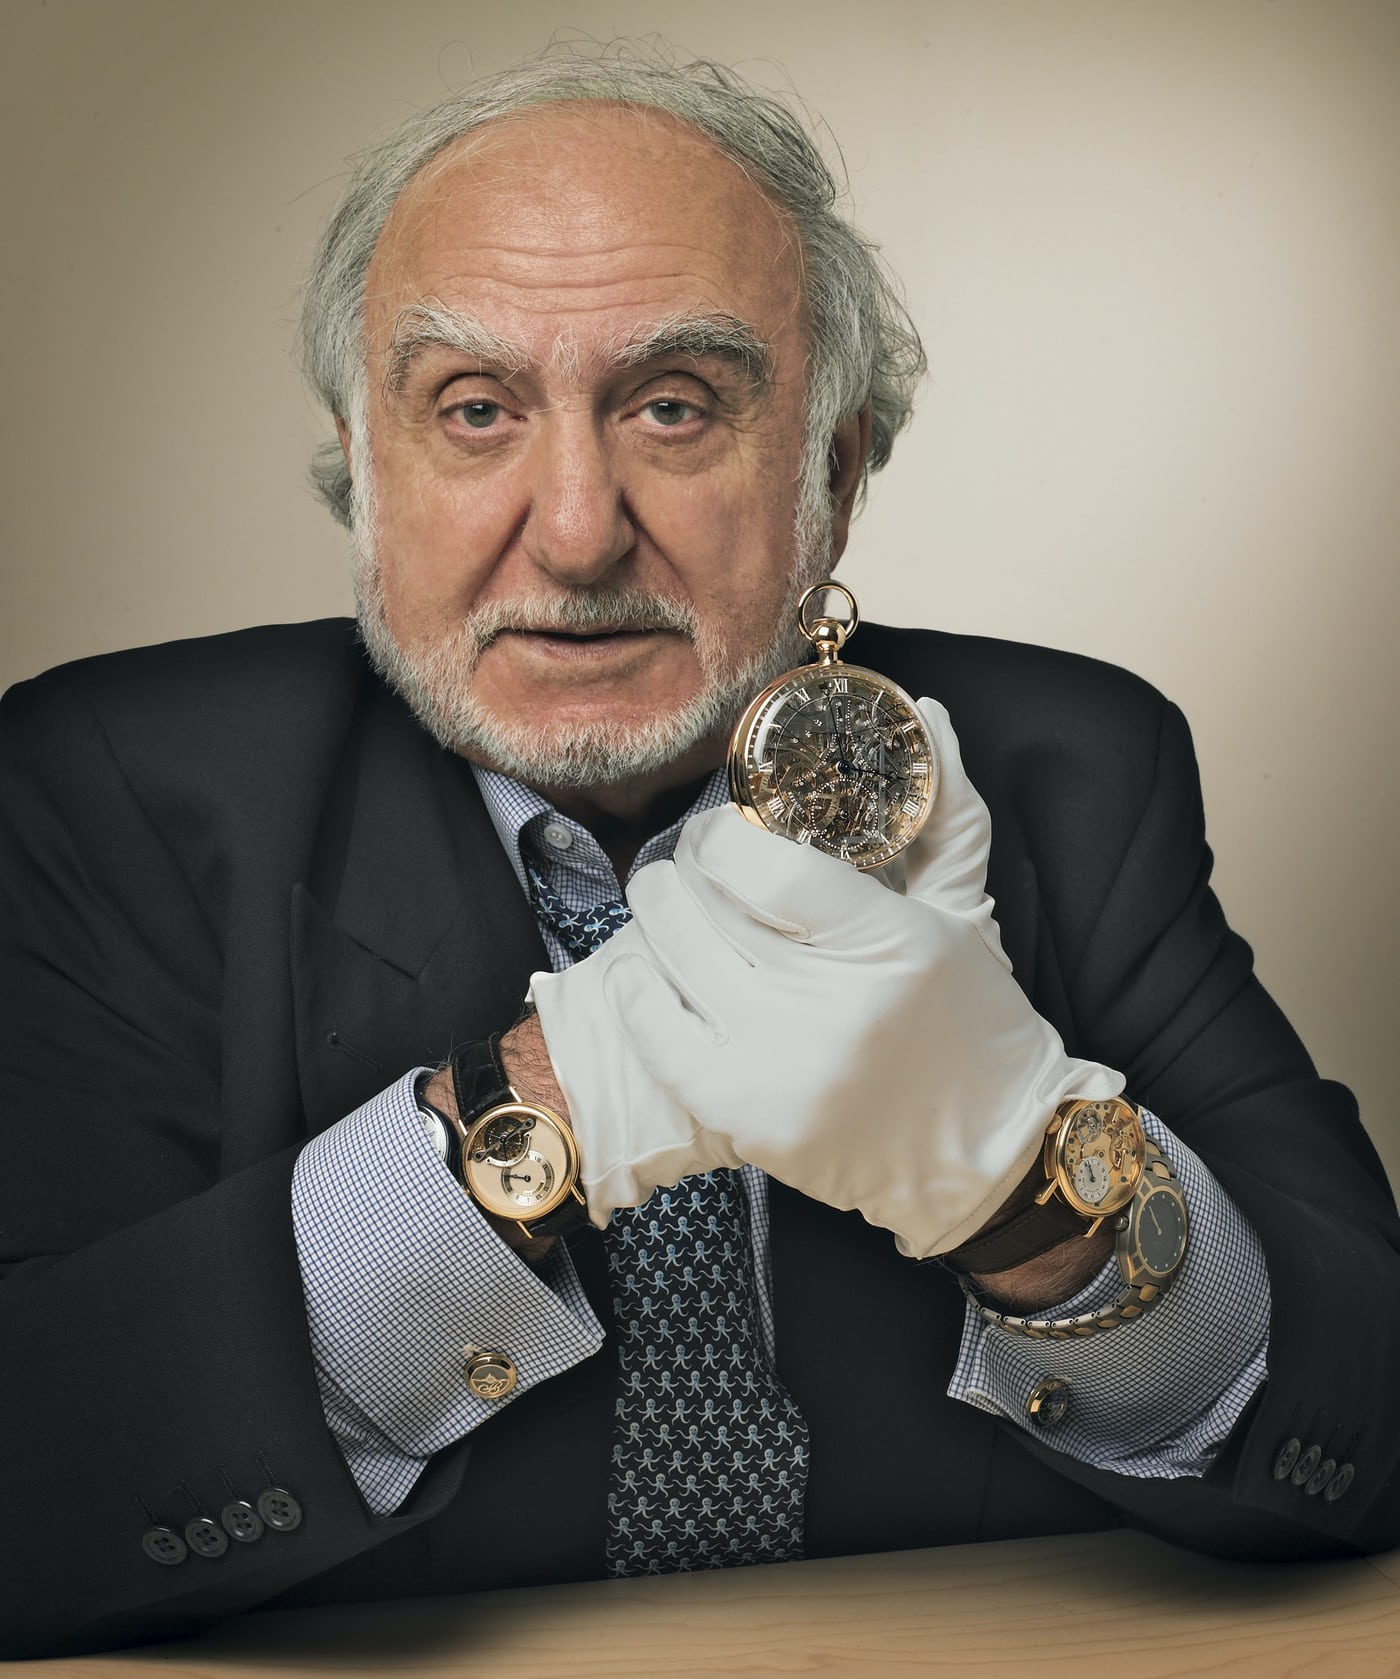 Nicoloas Hayek the CEO and Chairman of the Swatch Group for A Collected Man London